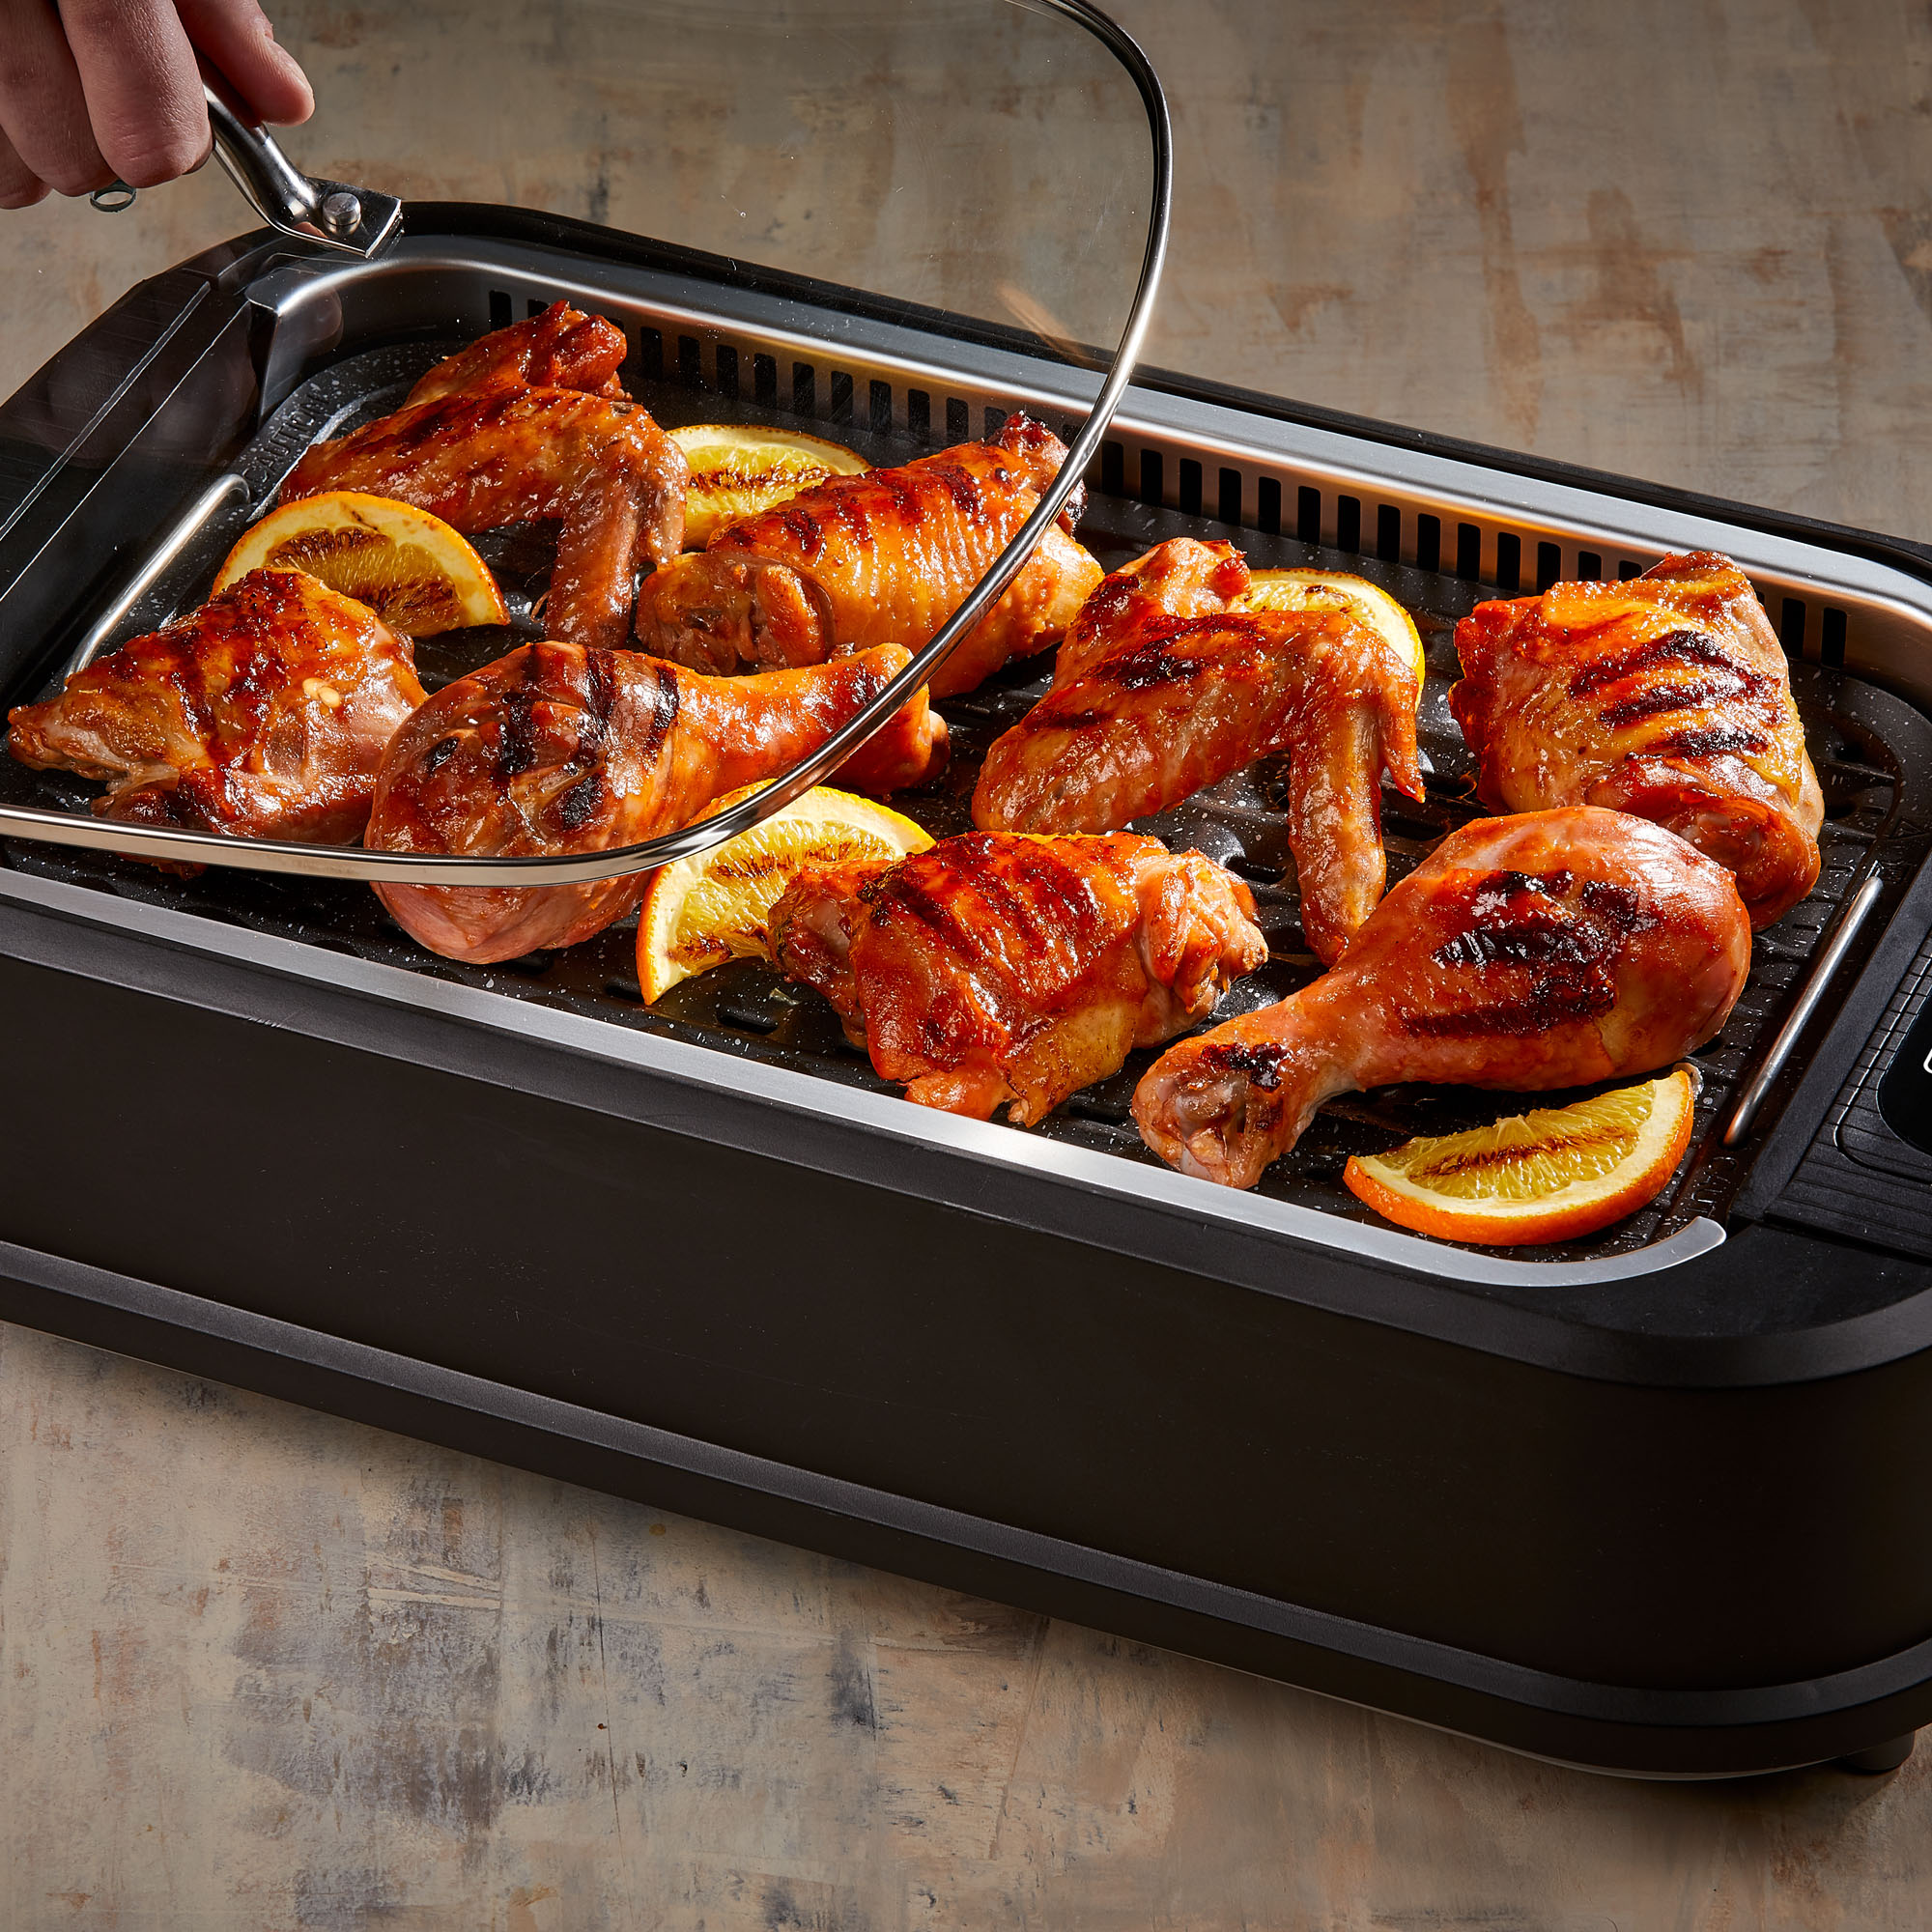 Smokeless Indoor Electric Grill POWER 1200 Watts XL Non